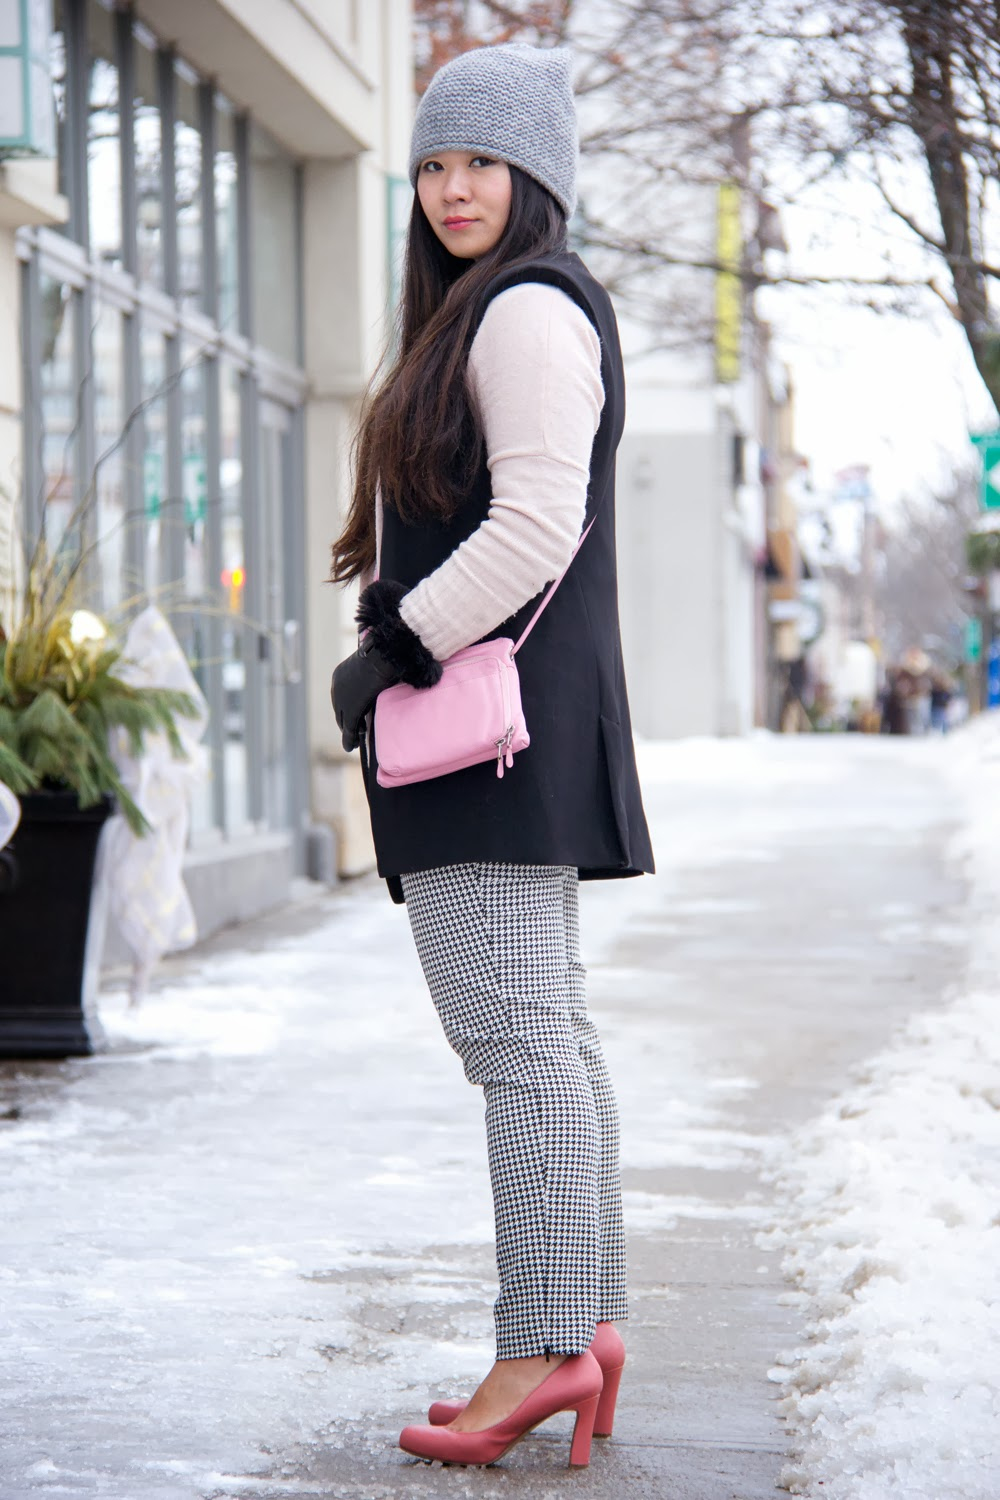 Zara-Grey-Beanie, Black-Sleeveless-Blazer, Mix-Prints, Winter-Outfit, Street-Style